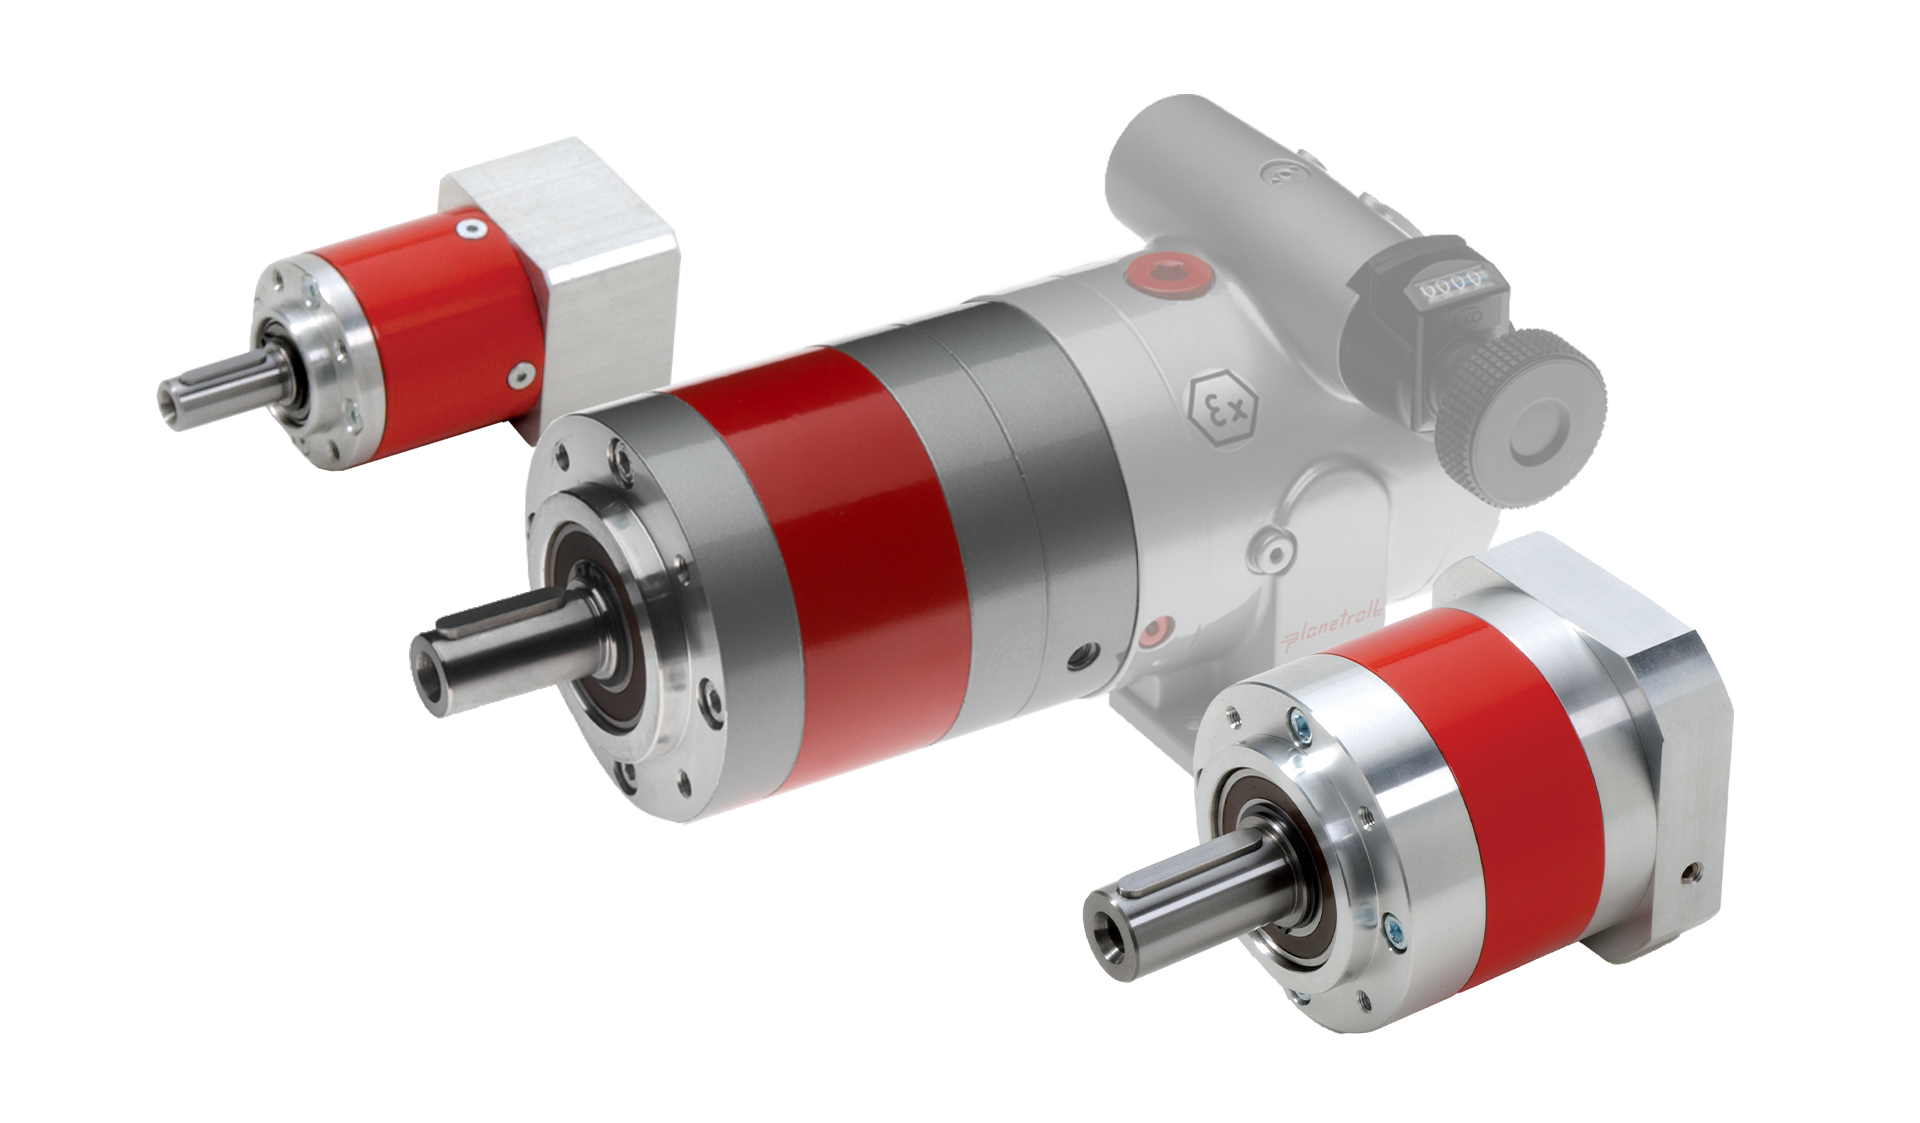 Planetary gearheads planetdrive® PD Planetroll